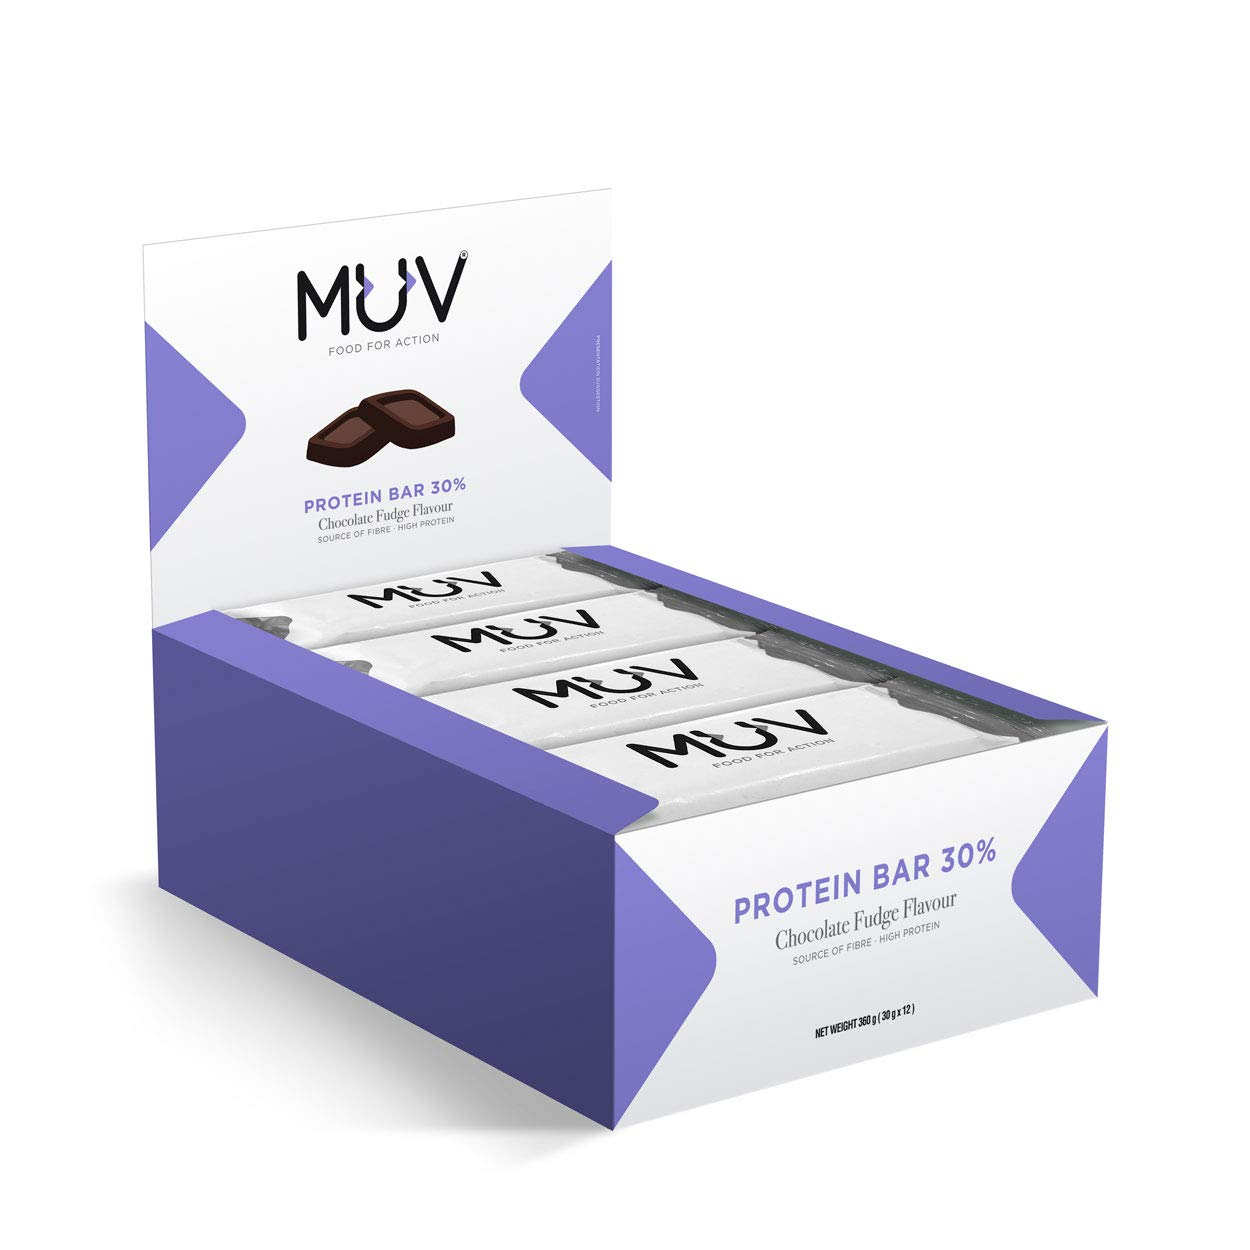 Muv Food For Action - Barras de proteína sabor ganache de chocolate, 12 unidades de 30 g